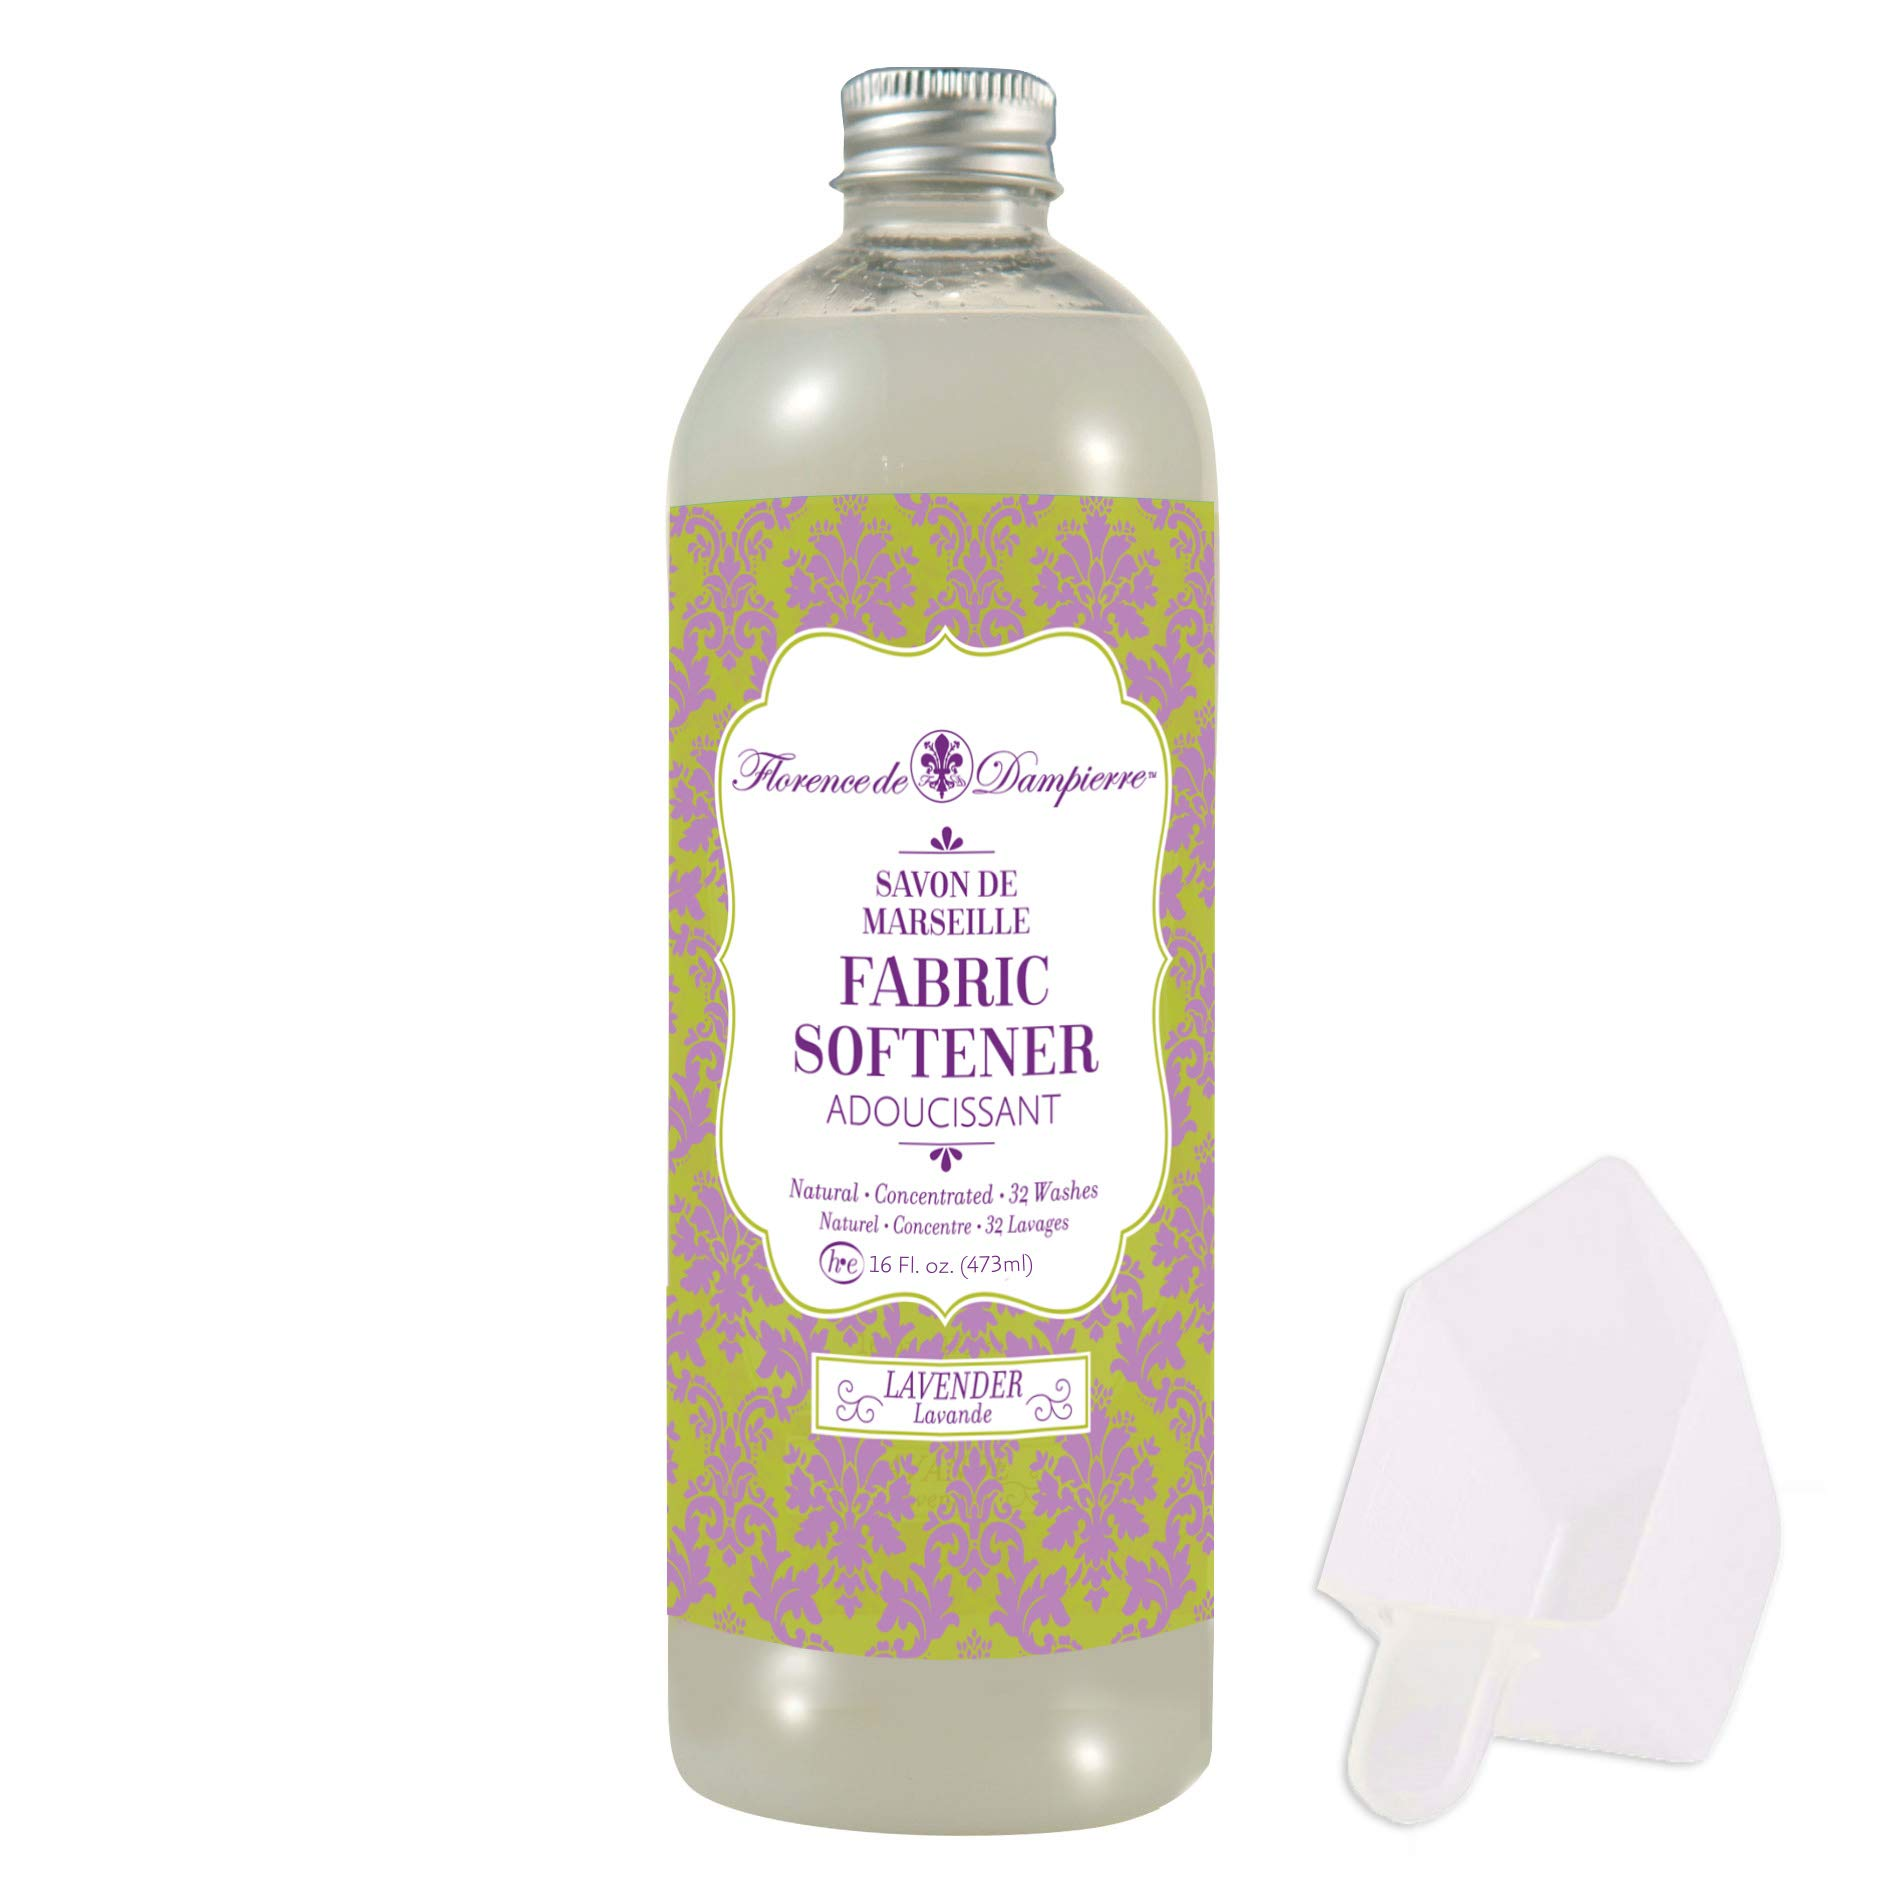 Florence de Dampierre Organic All-Natural Savon de Marseille Soap, Concentrated Liquid Fabric Softener, 16 oz. - Lavender